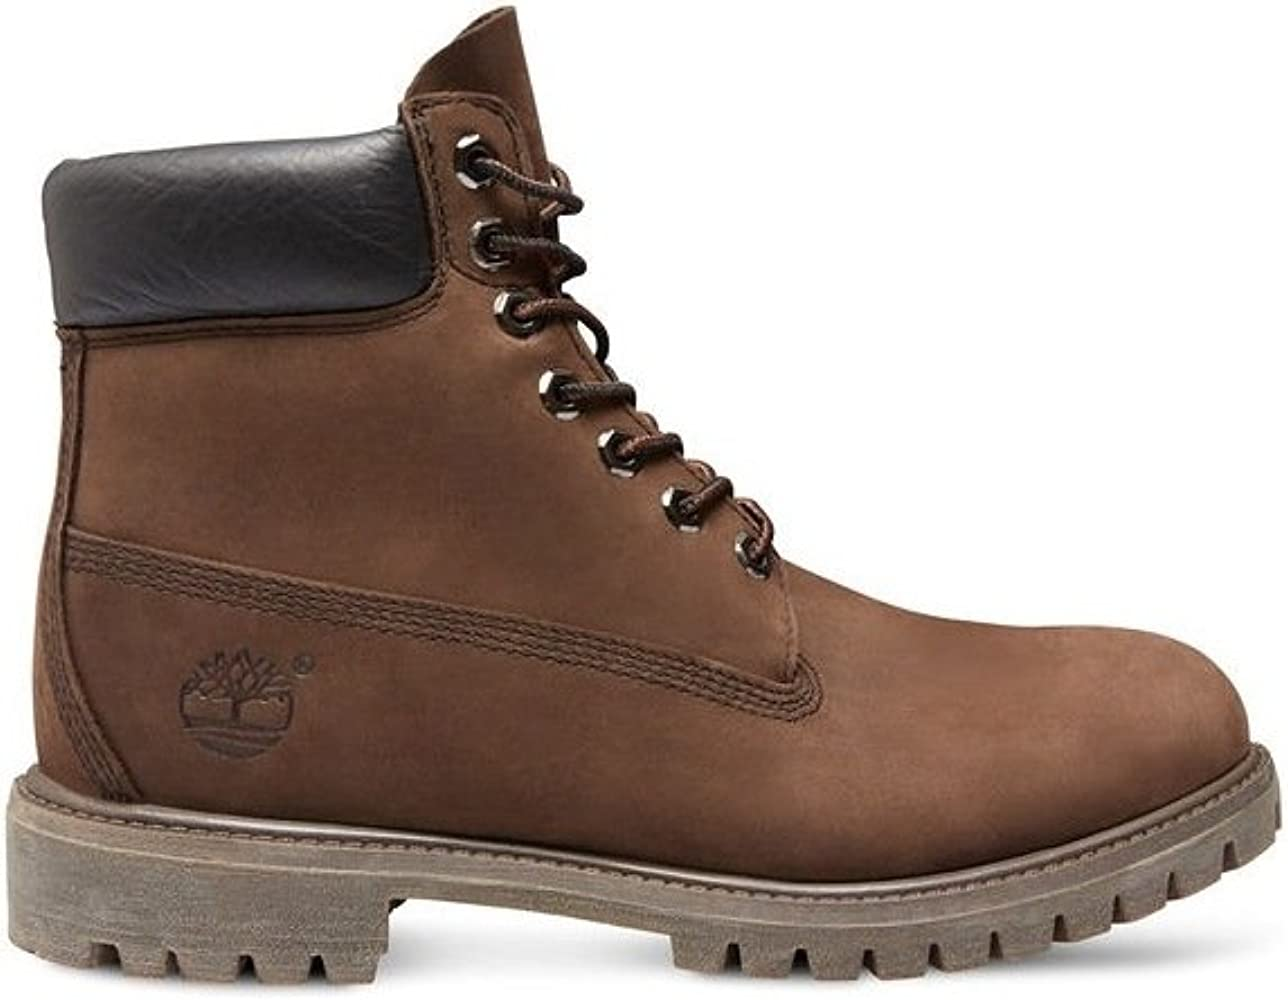 Timberland 6 inch Premium Waterproof, Bottes Classiques